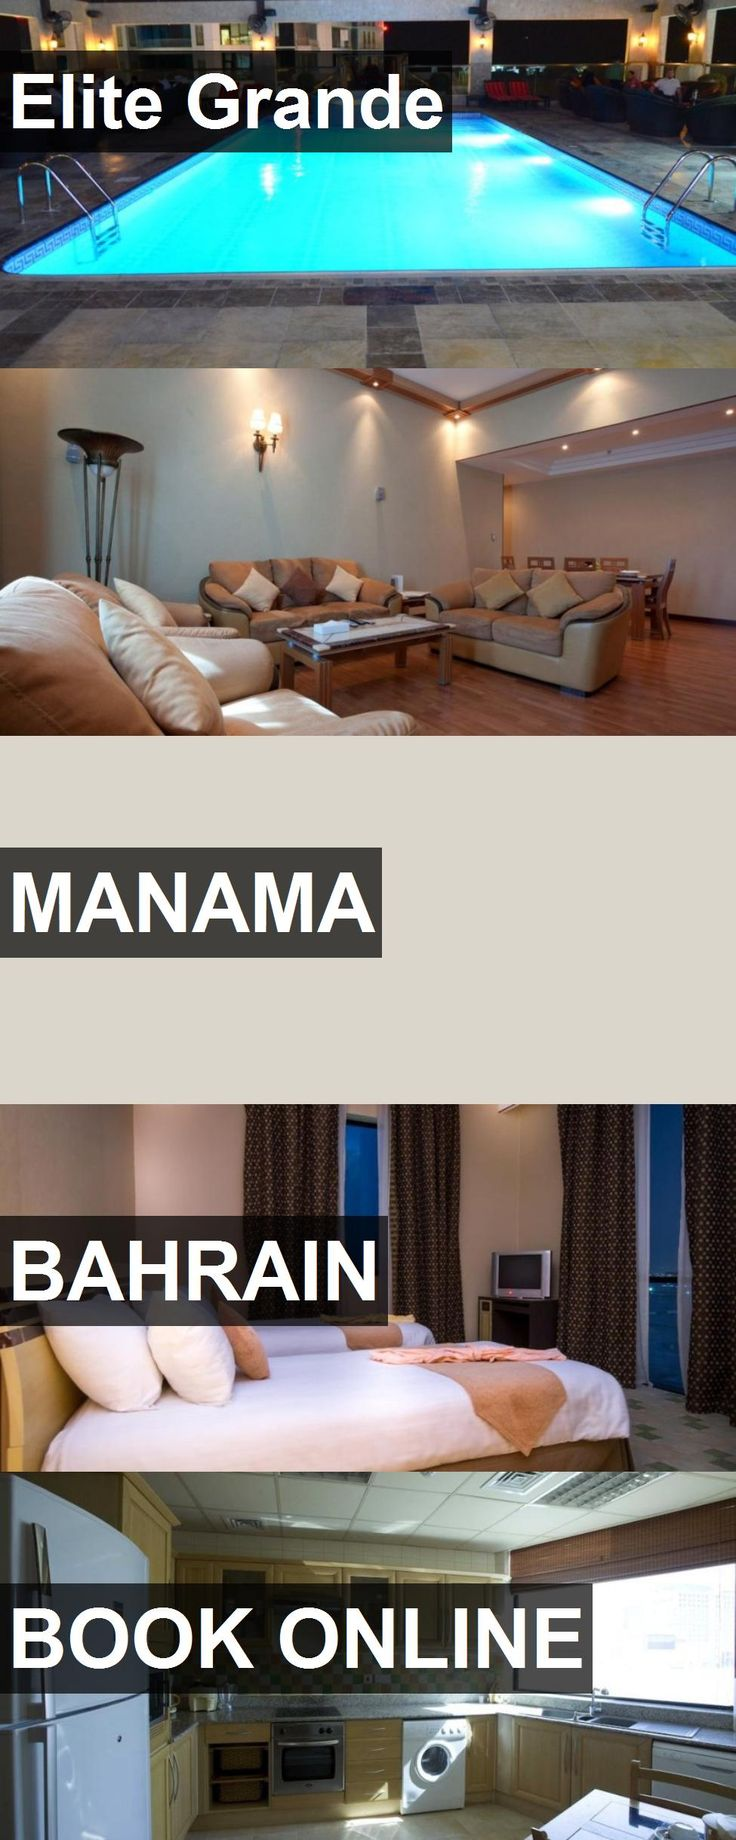 Hotel Elite Grande in Manama, Bahrain. For more information, photos, reviews and best prices please follow the link. #Bahrain #Manama #travel #vacation #hotel